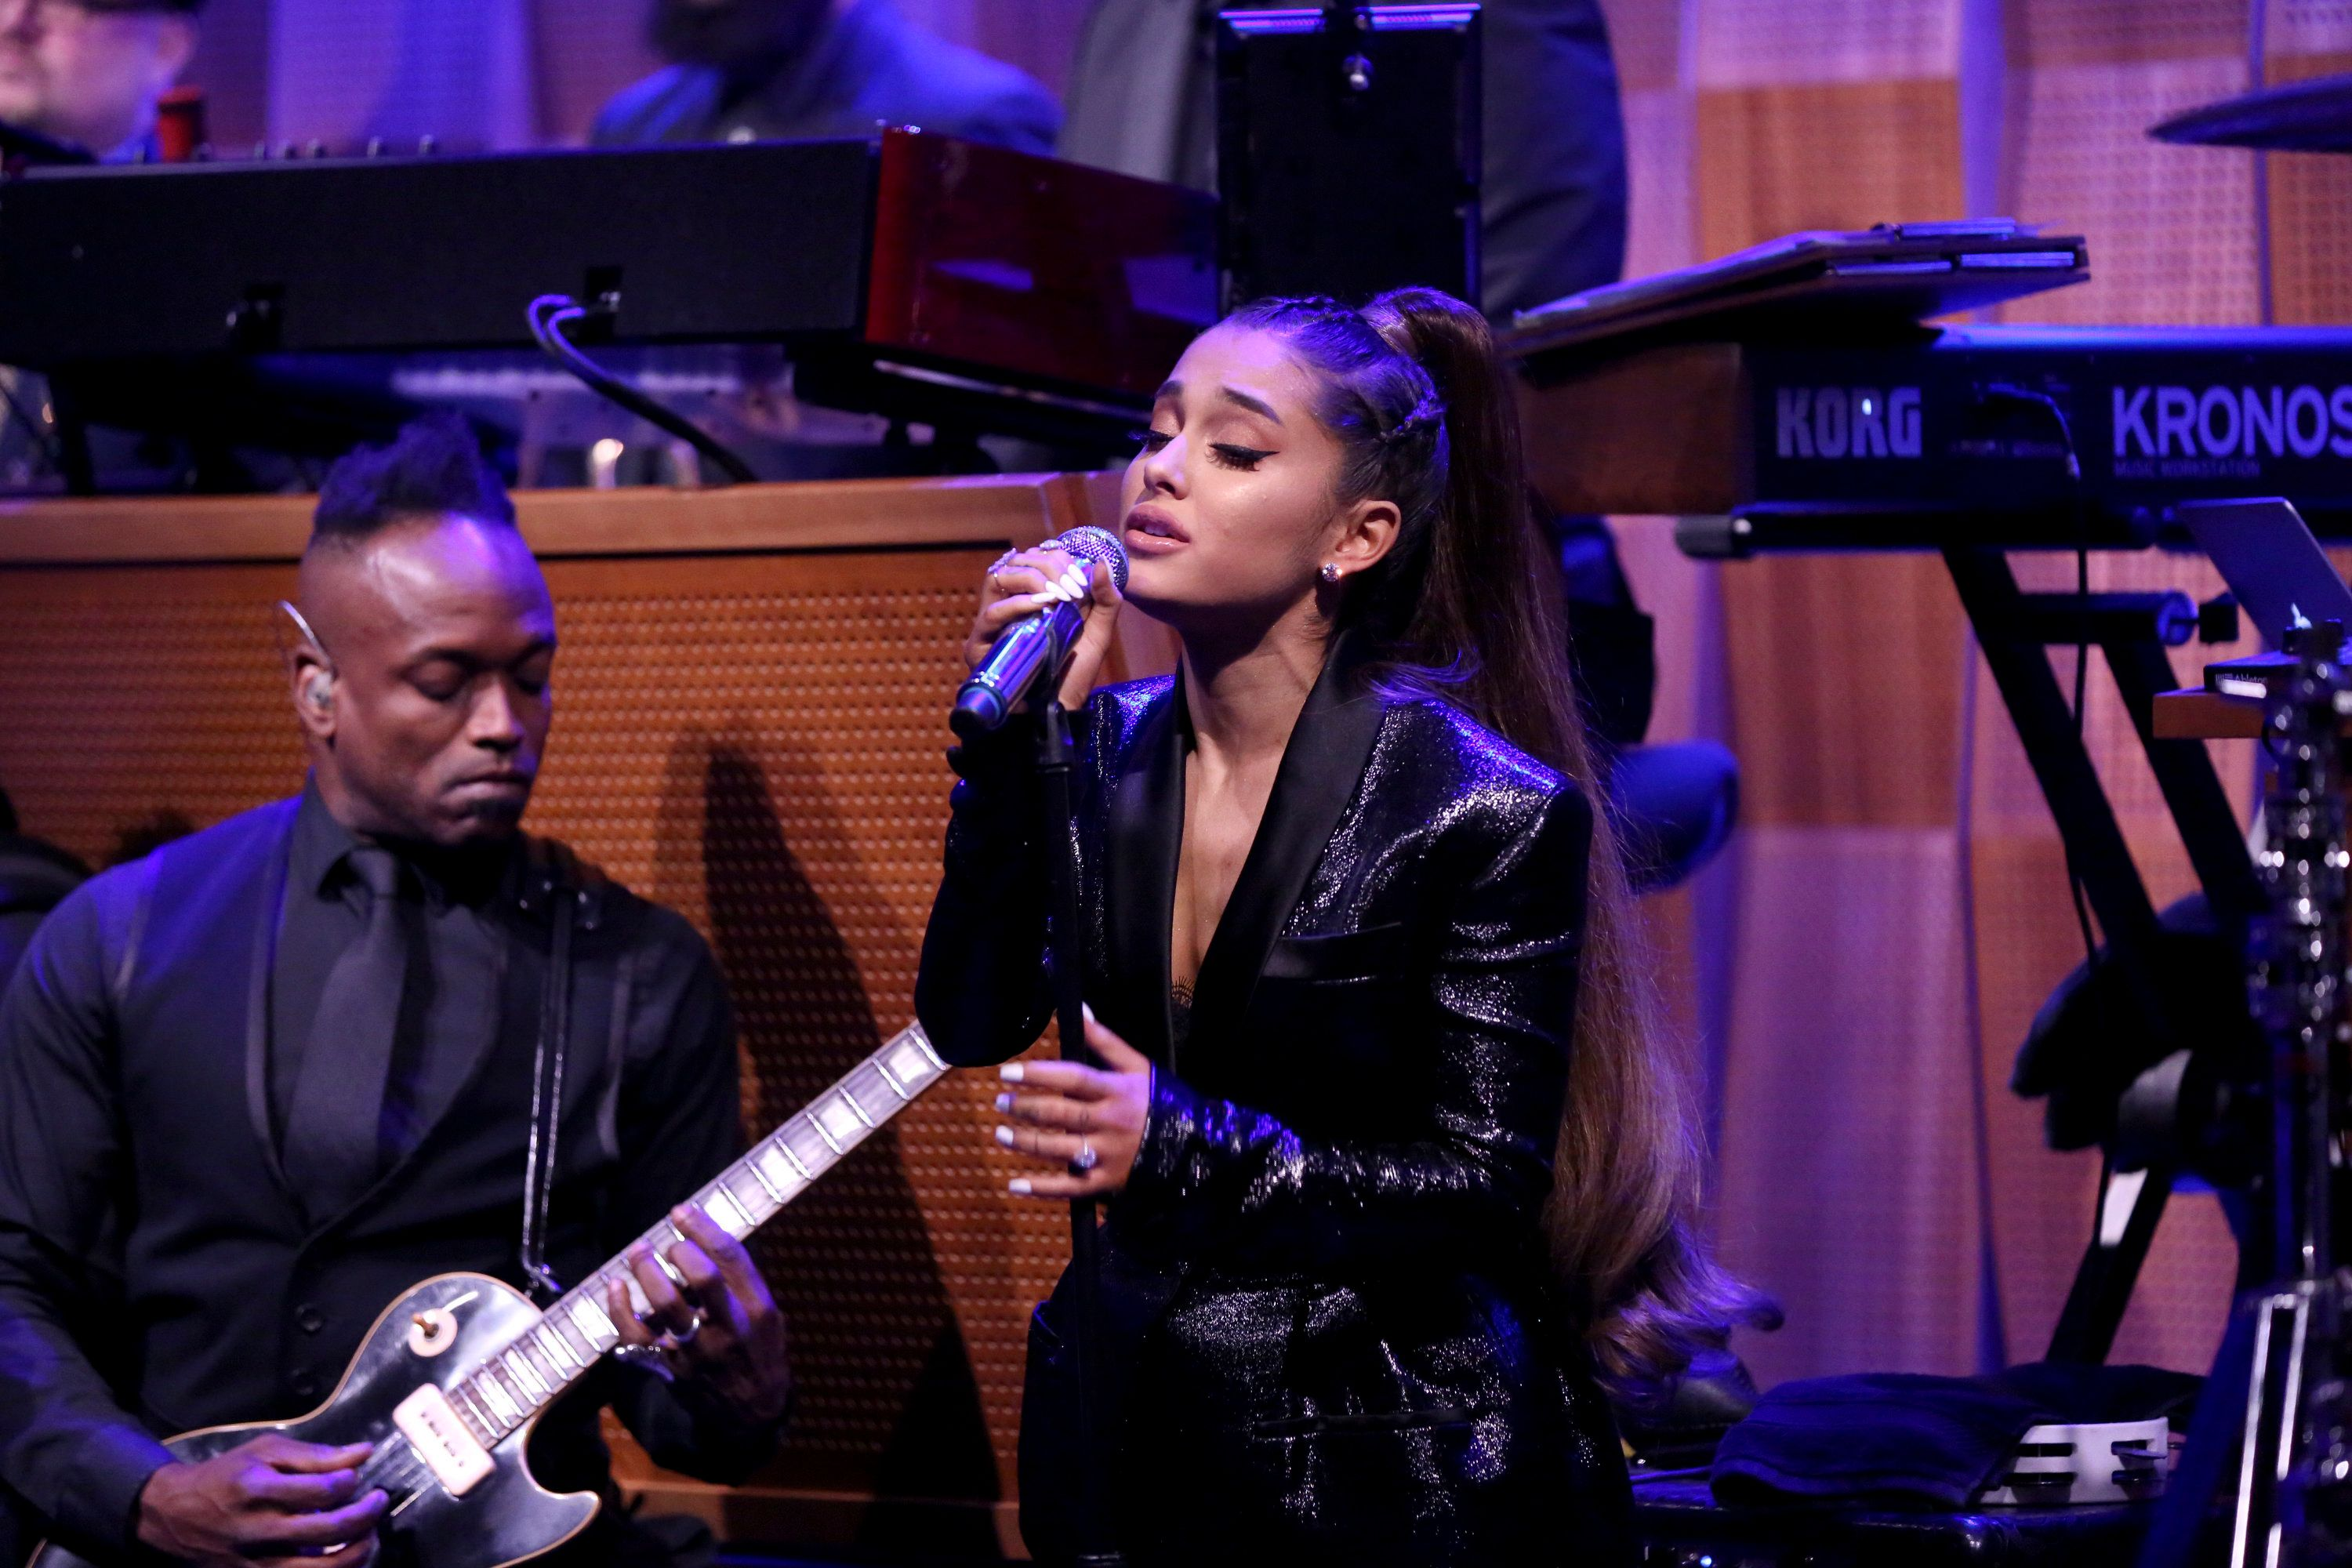 THE TONIGHT SHOW STARRING JIMMY FALLON -- Episode 0915 -- Pictured: Singer Ariana Grande performs 'Natural Woman' with The Roots on August 16, 2018 -- (Photo by: Andrew Lipovsky/NBC/NBCU Photo Bank via Getty Images)